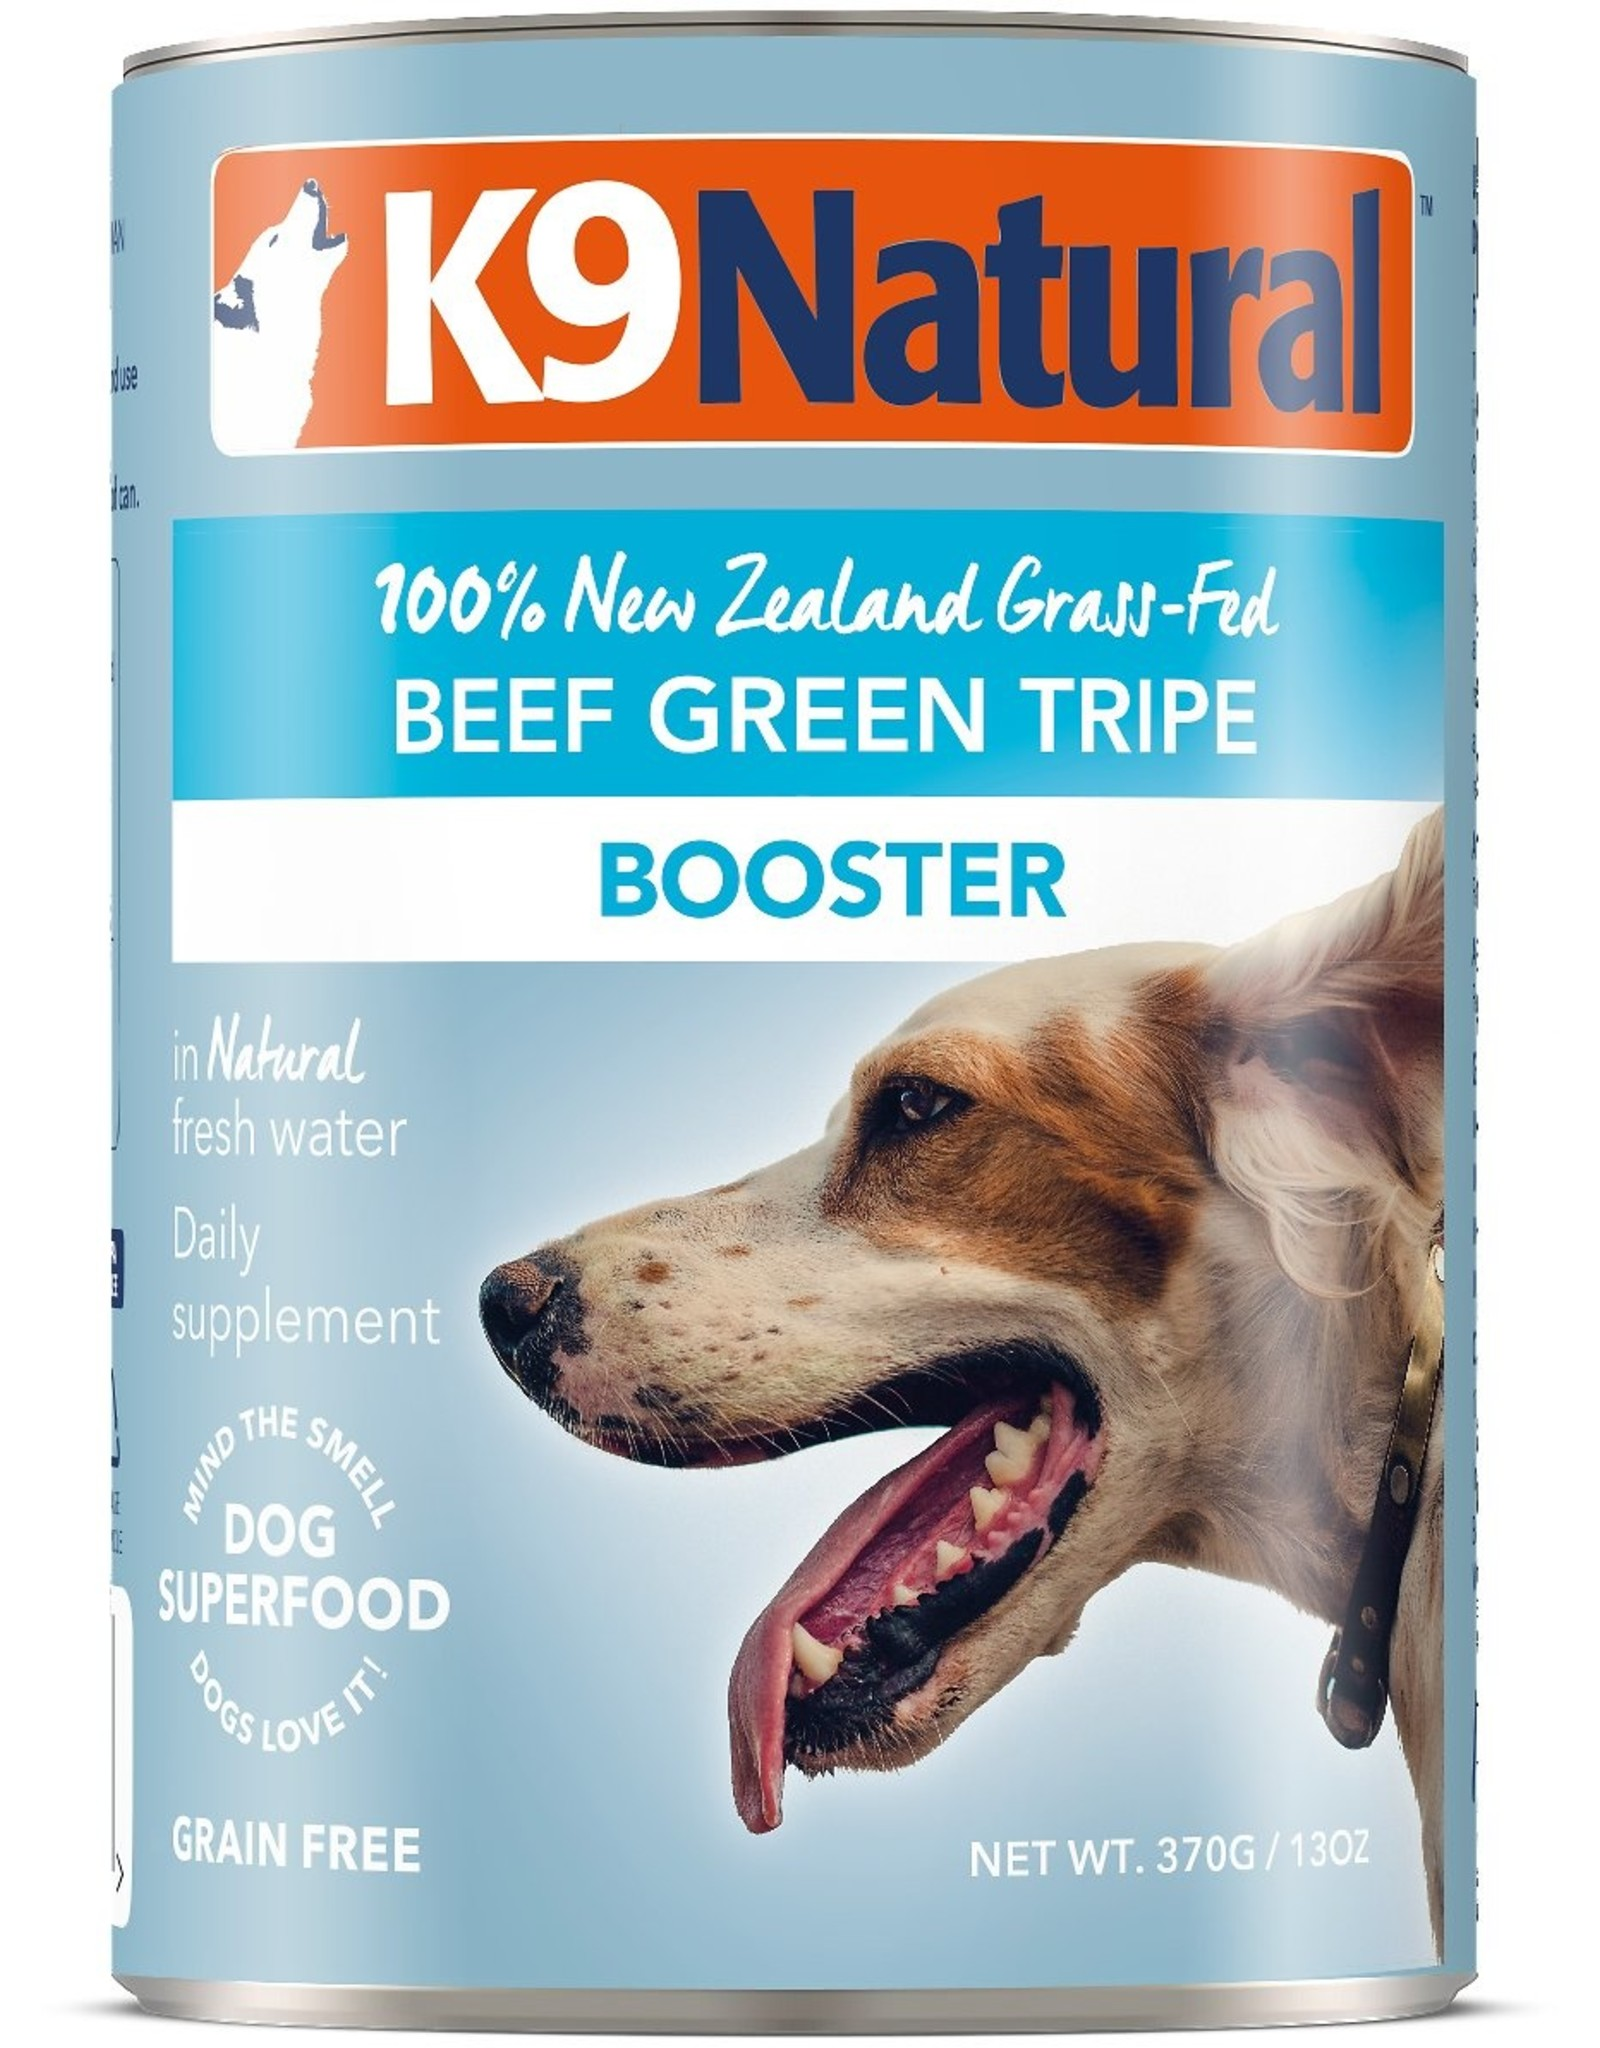 K9 Natural K9 Natural Booster Beef Green Tripe